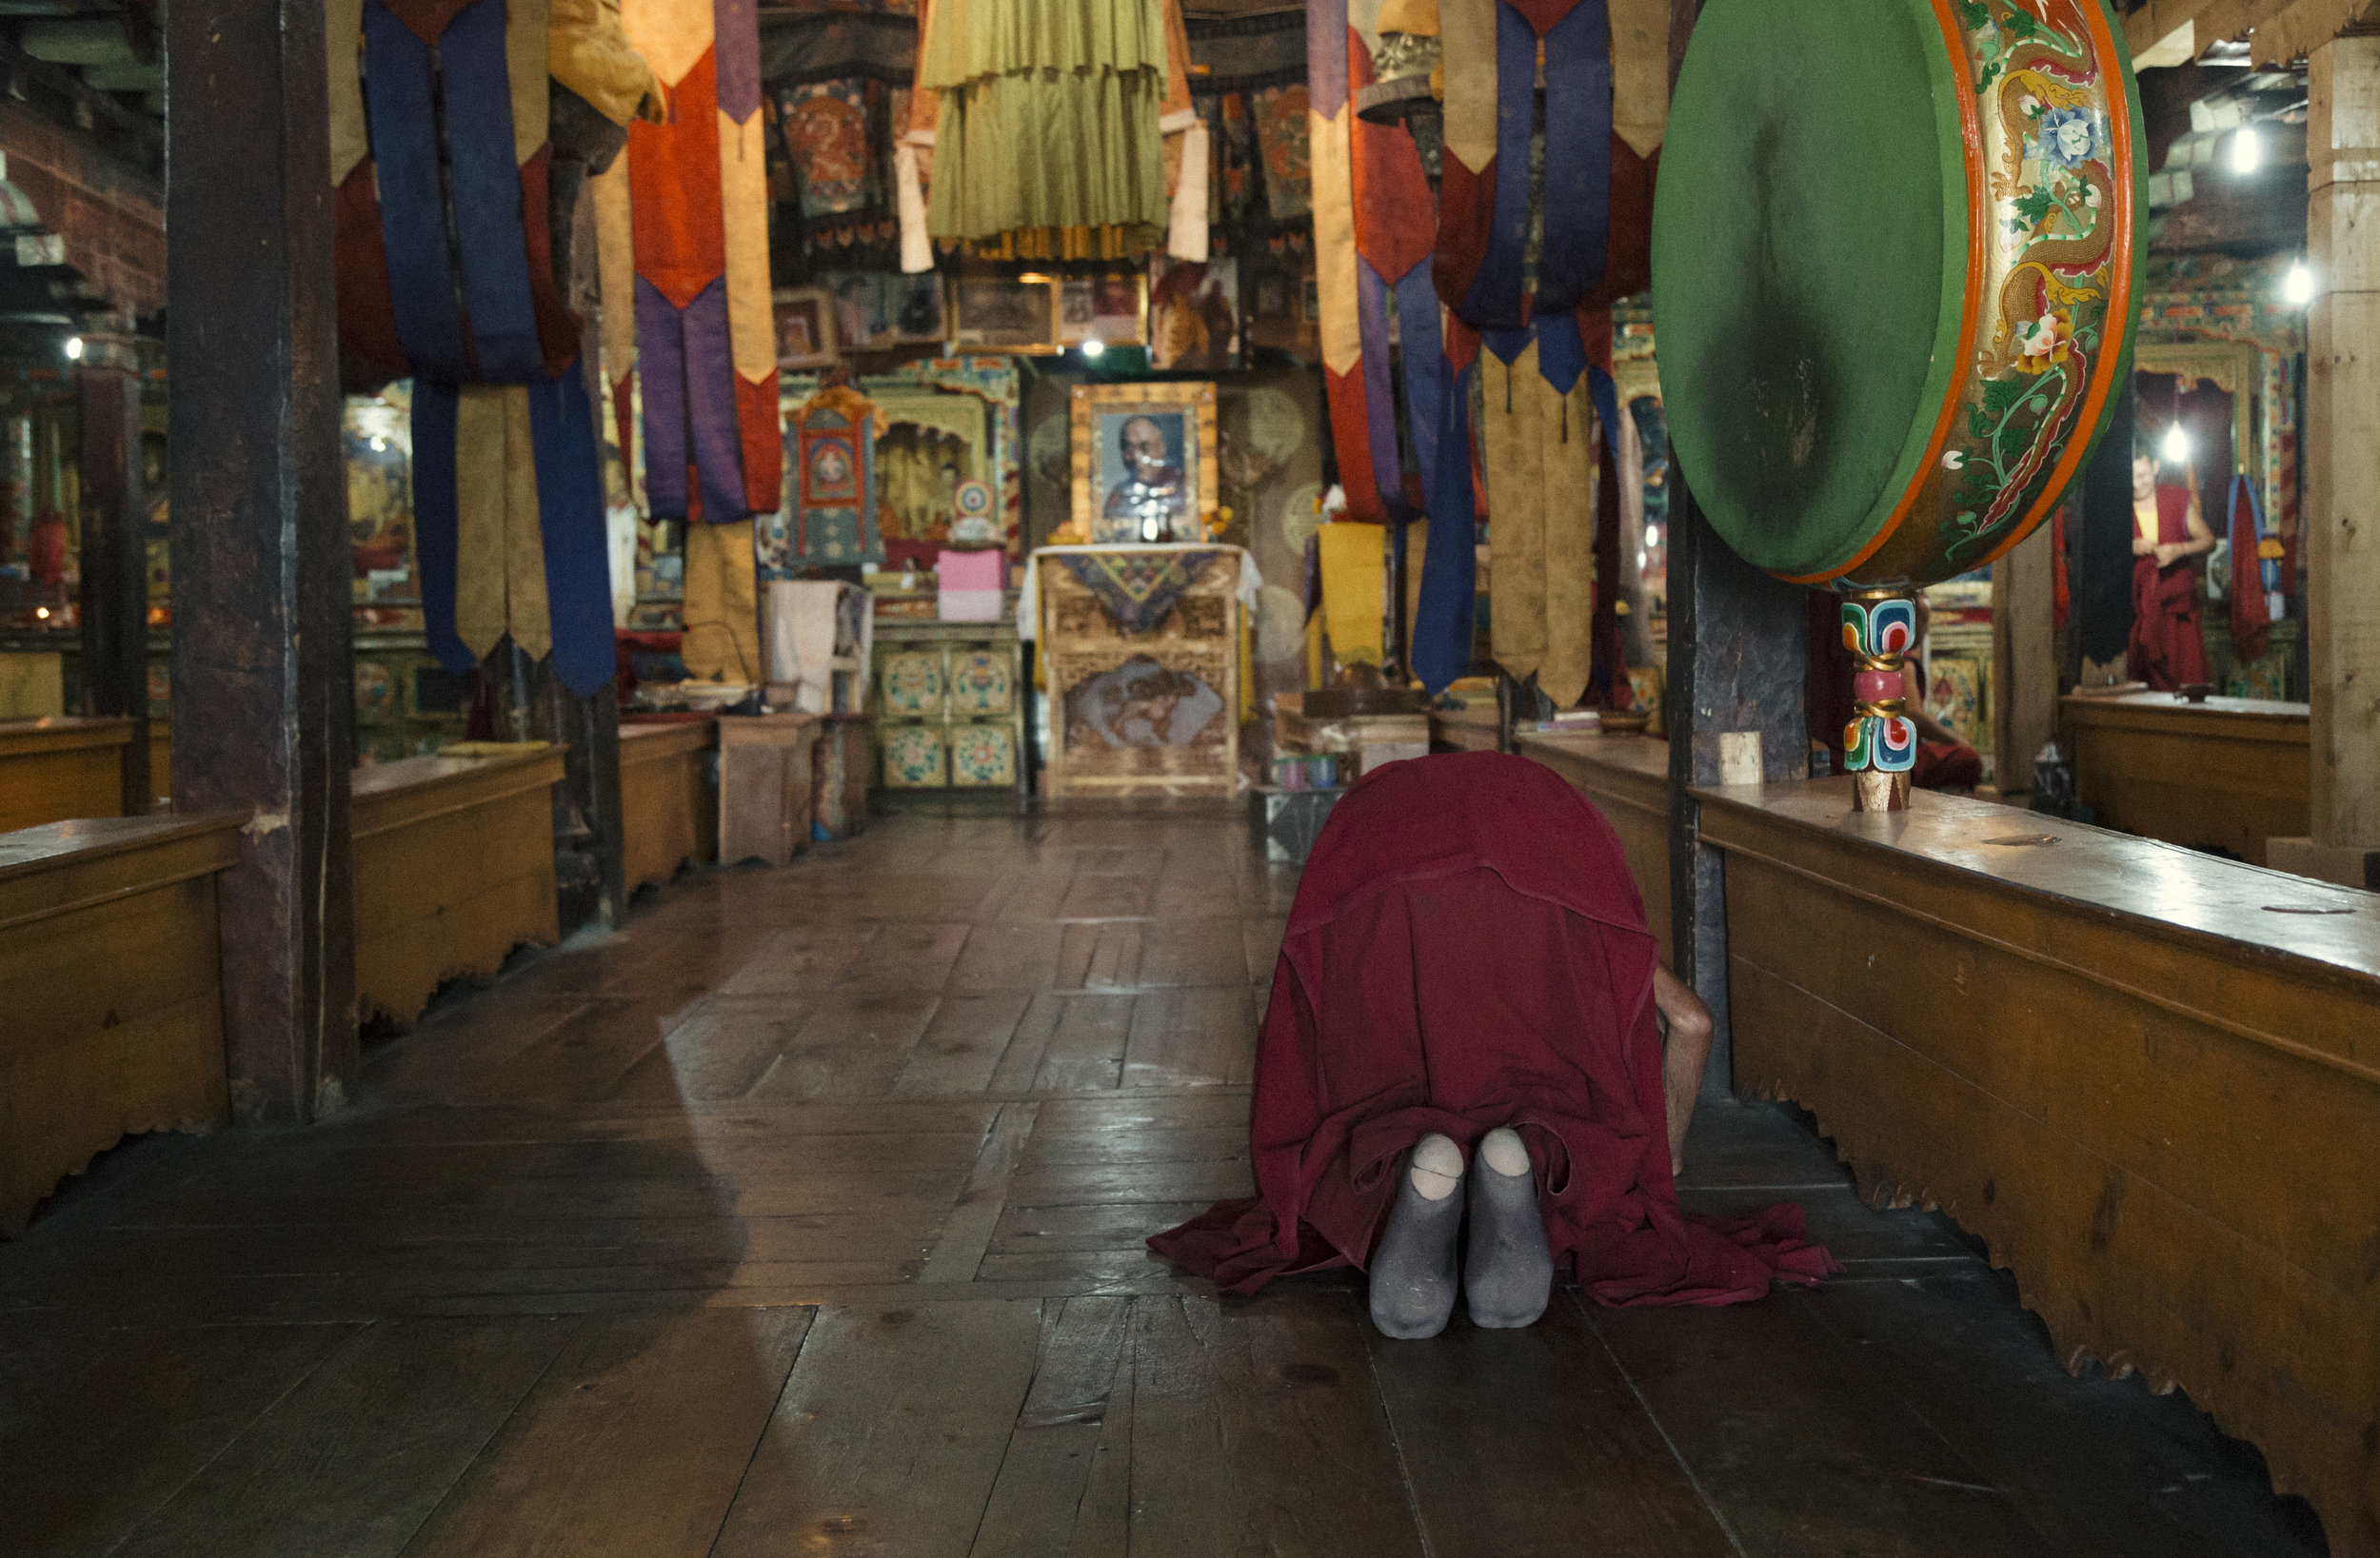 A Buddhist monk praying at the prayer hall in Thiksey monastry